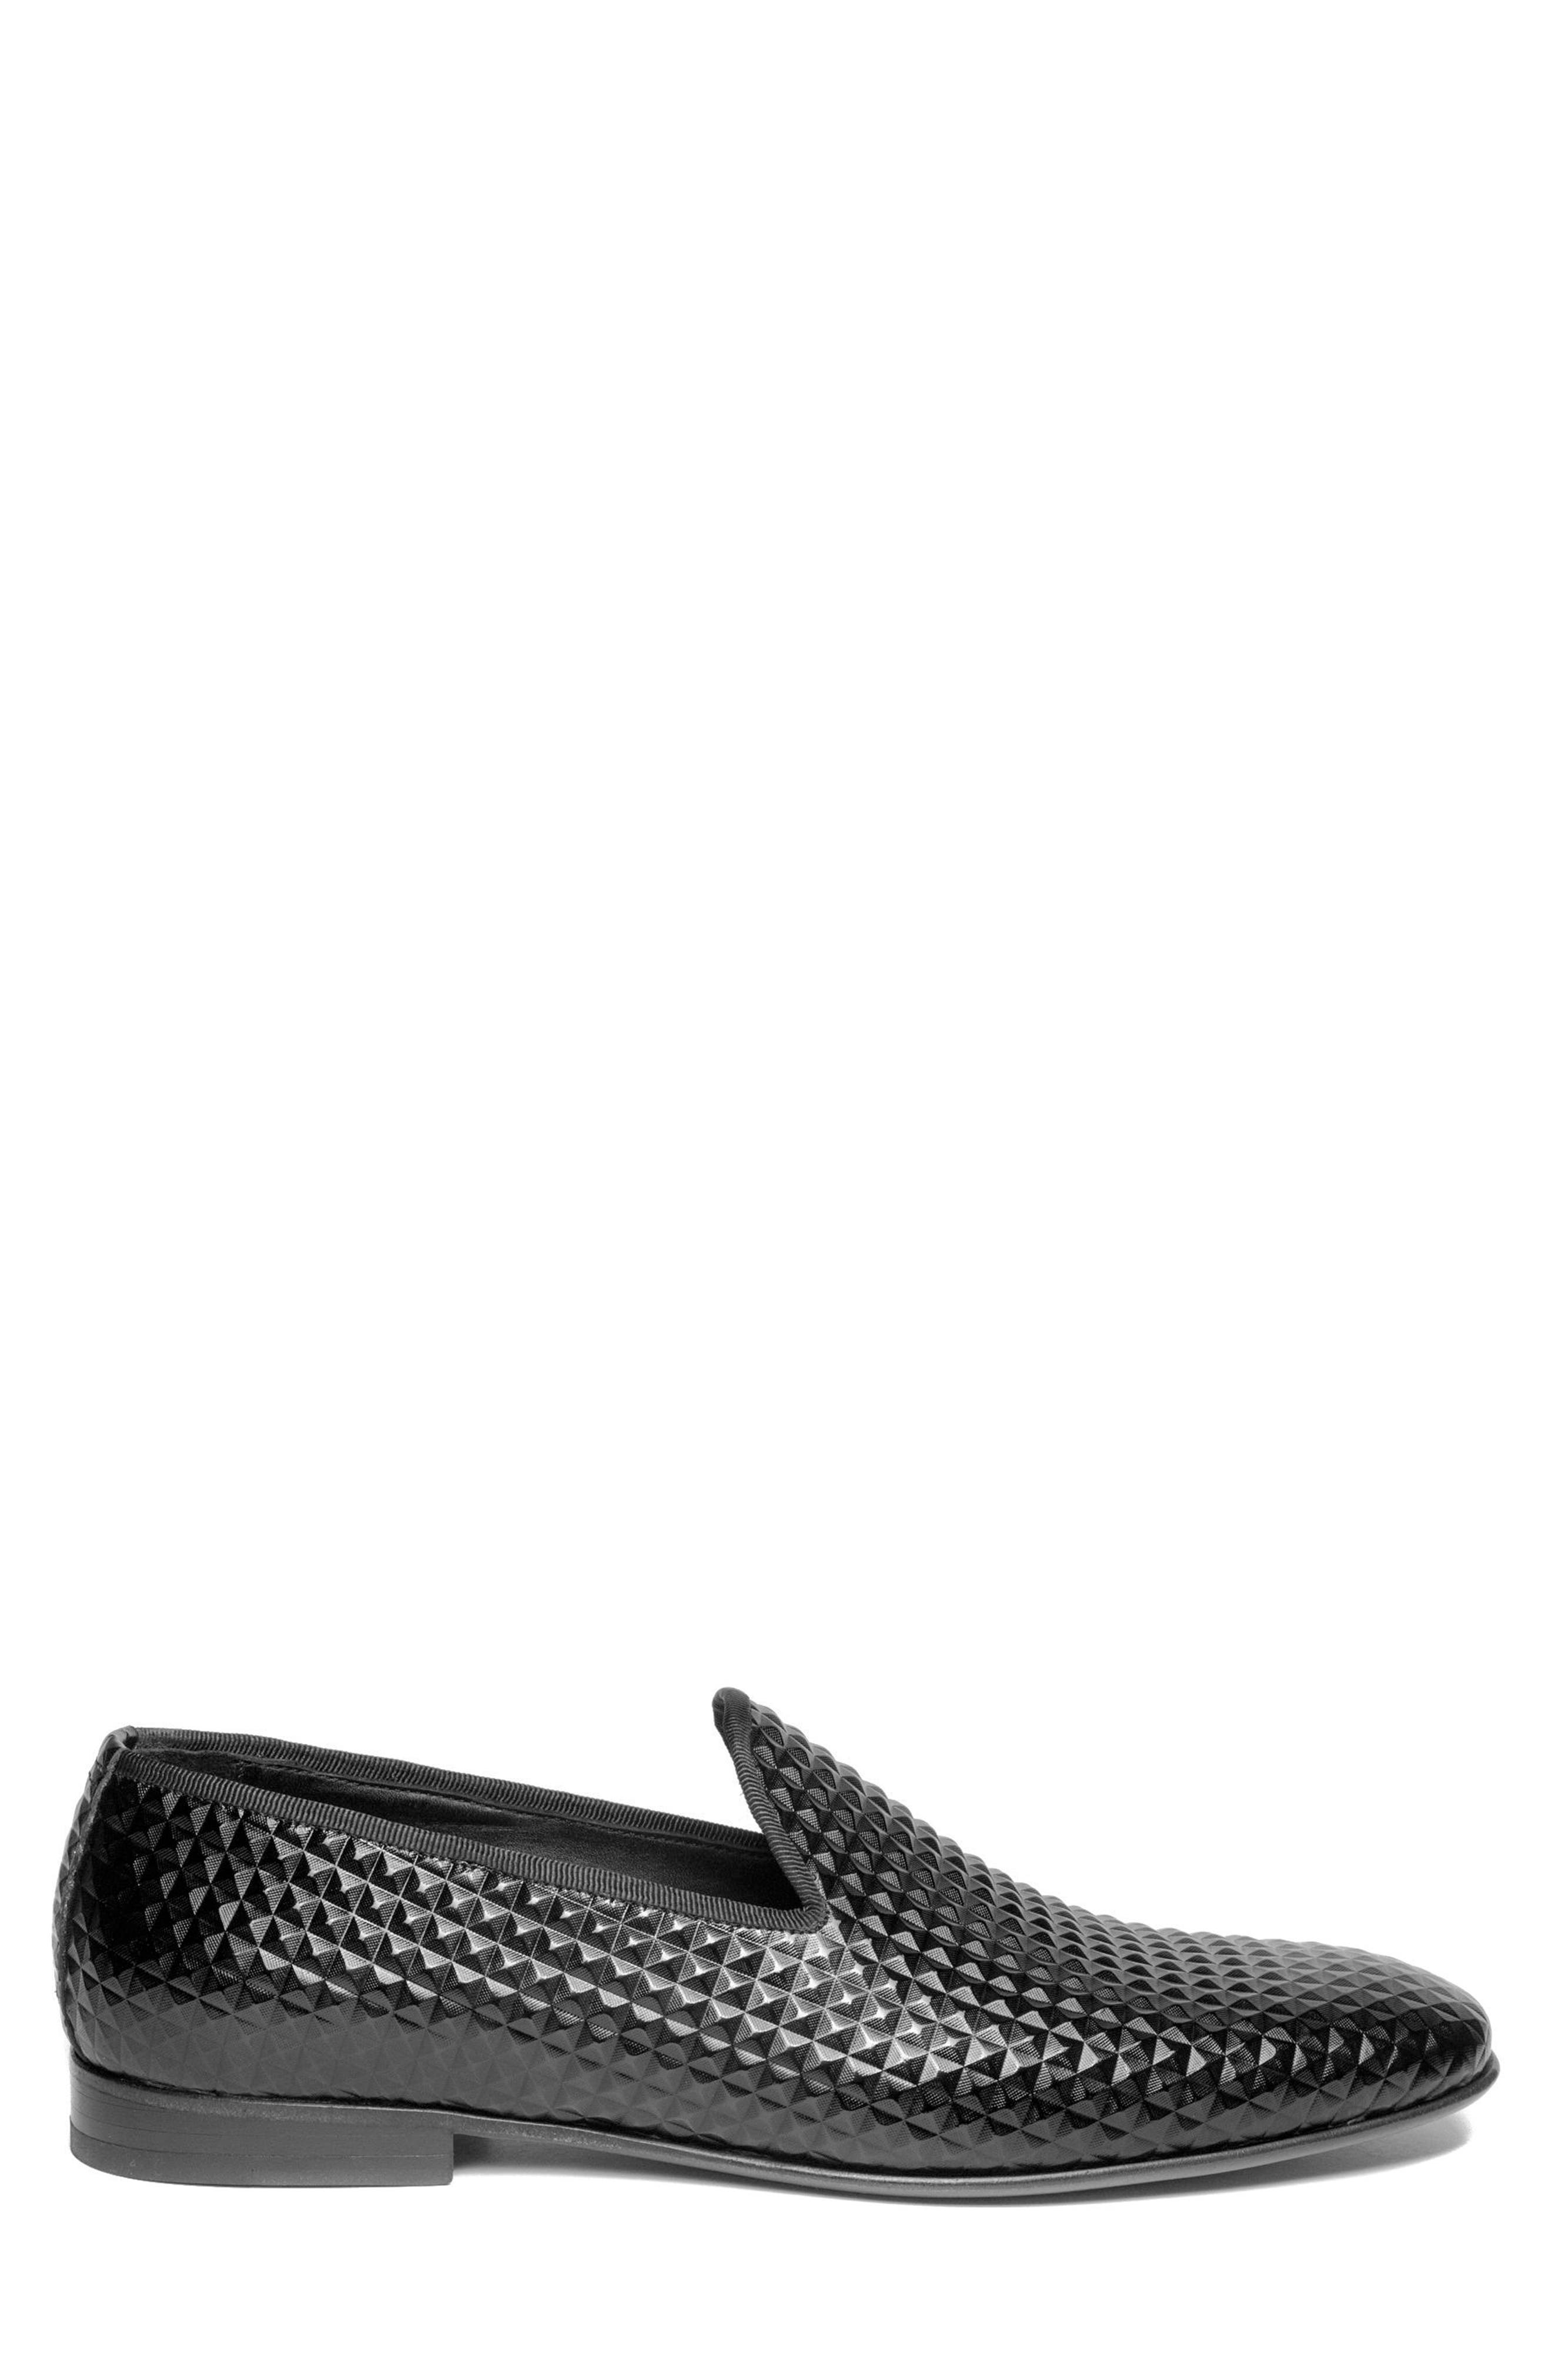 Hugh Pyramid Embossed Venetian Loafer,                             Alternate thumbnail 3, color,                             Black Leather